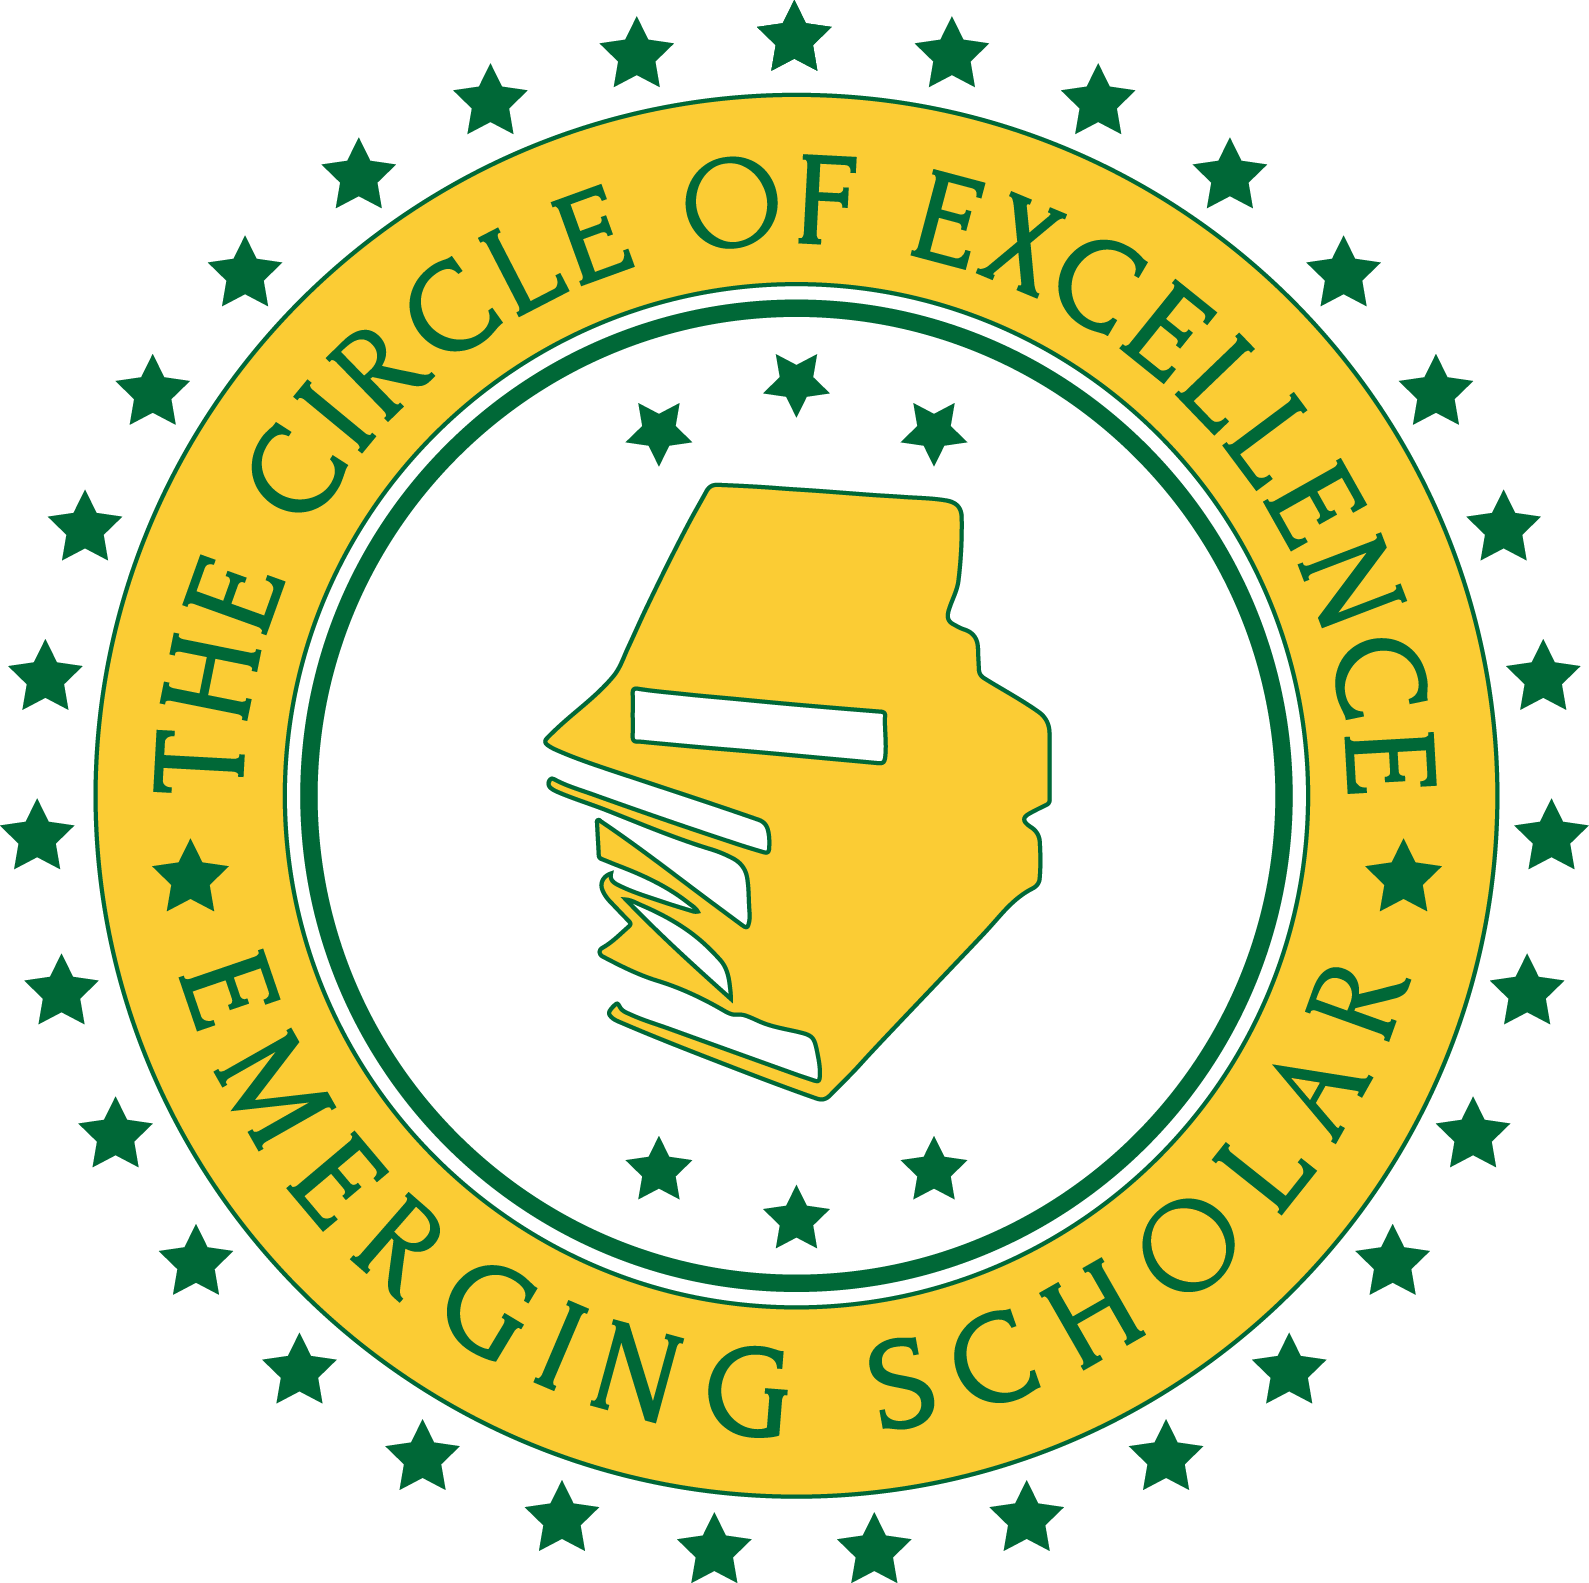 The Circle of Excellence: Our Story - In 2015, Jim Hill High School's International Baccalaureate 2011 graduates developed a way to continuously reward scholars for a job well done and give students in an often overlooked neighborhood something to compete for — The Circle of Excellence Scholarship.This scholarship, entering its fifth application cycle, has offered last support to its recipients, both financially and through a network of mentors. Learn more about the International Baccalaureate Program